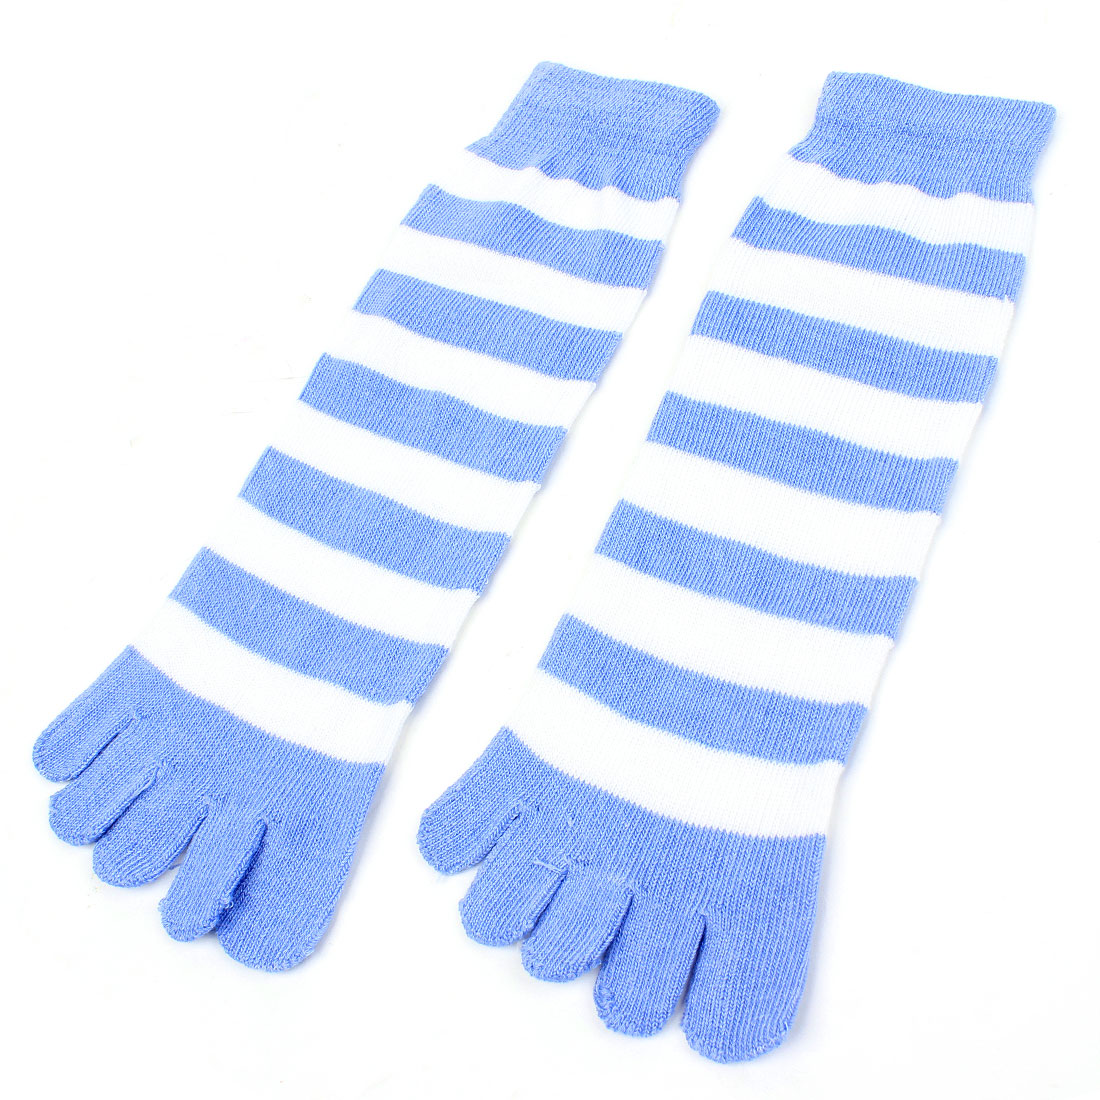 Woman Light Blue Acrylic Five Fingers Stretchy Feet Toe Socks Pair